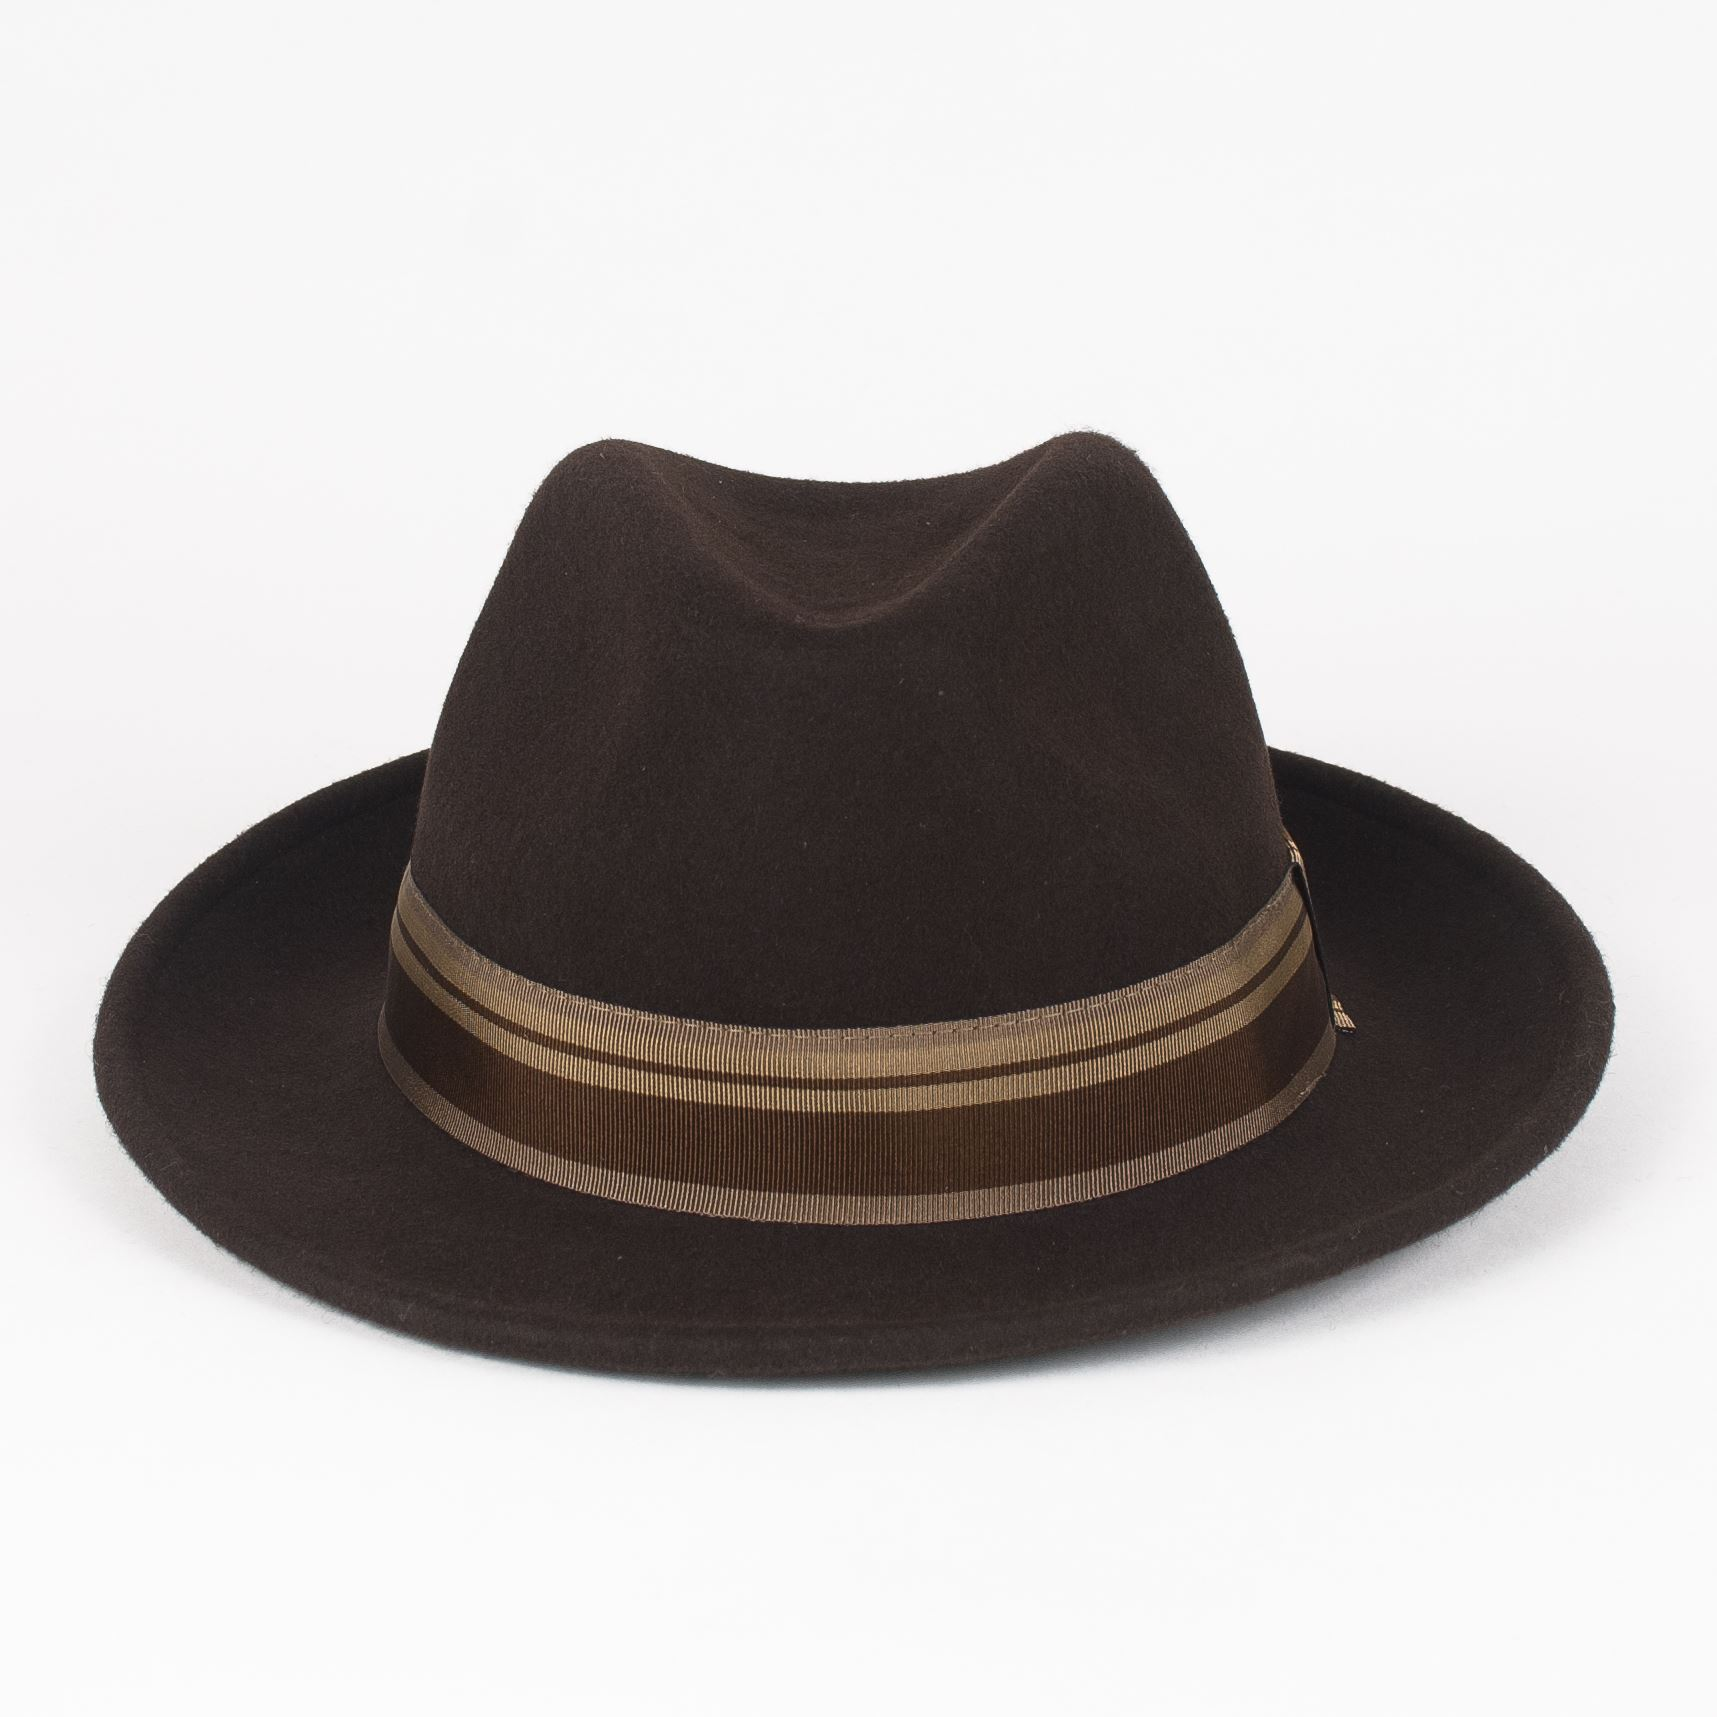 2bdd794d37b84 Stylish-100-Wool-Fedora-Hat-Waterproof-amp-Crushable-